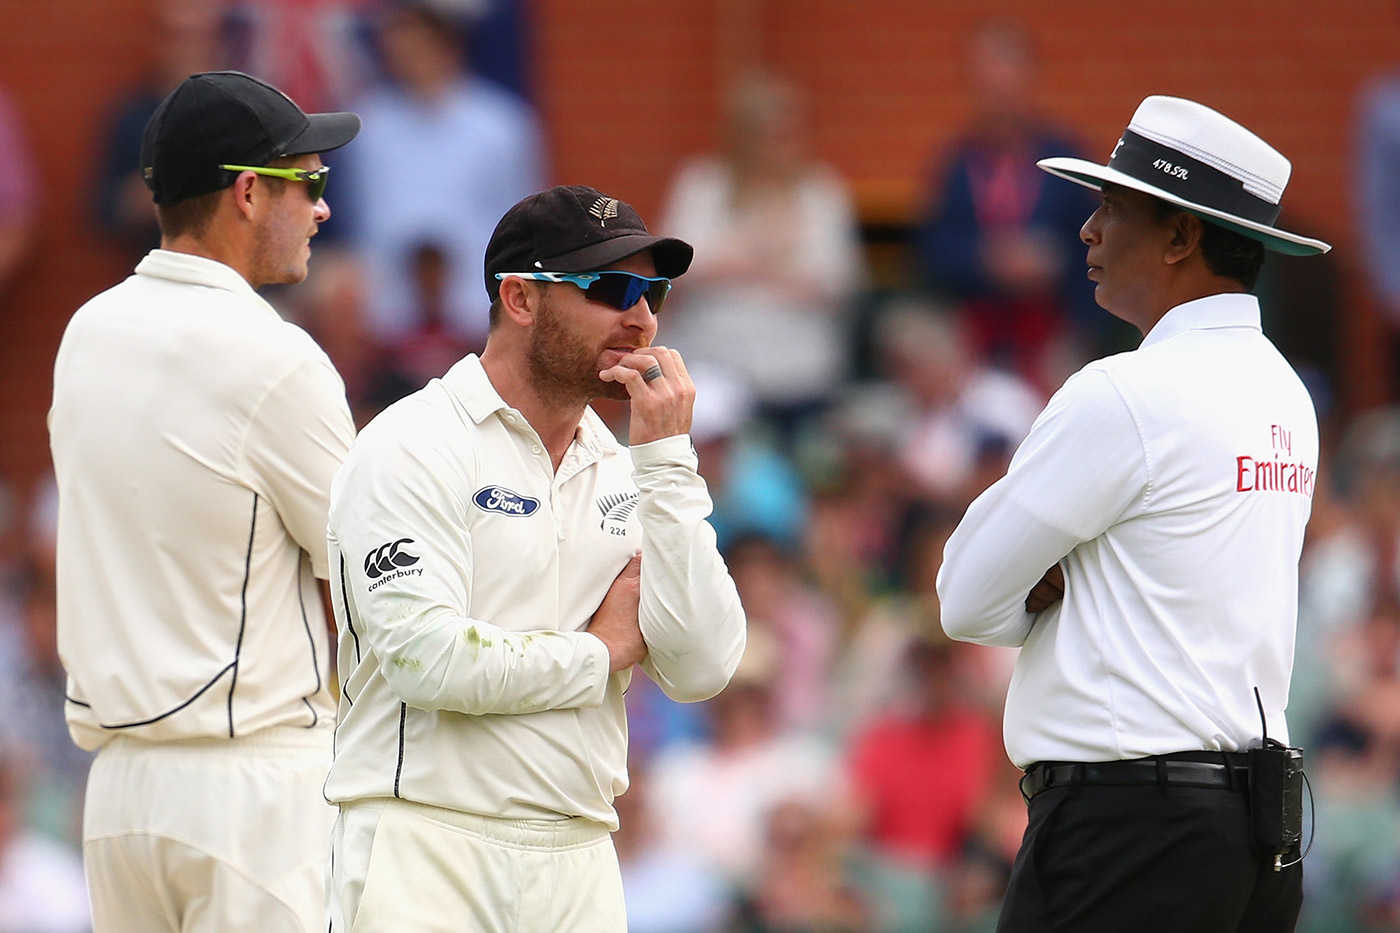 The rise of the DRS is tied in to the way the authority of the umpires has been undermined by players and broadcasters over the years